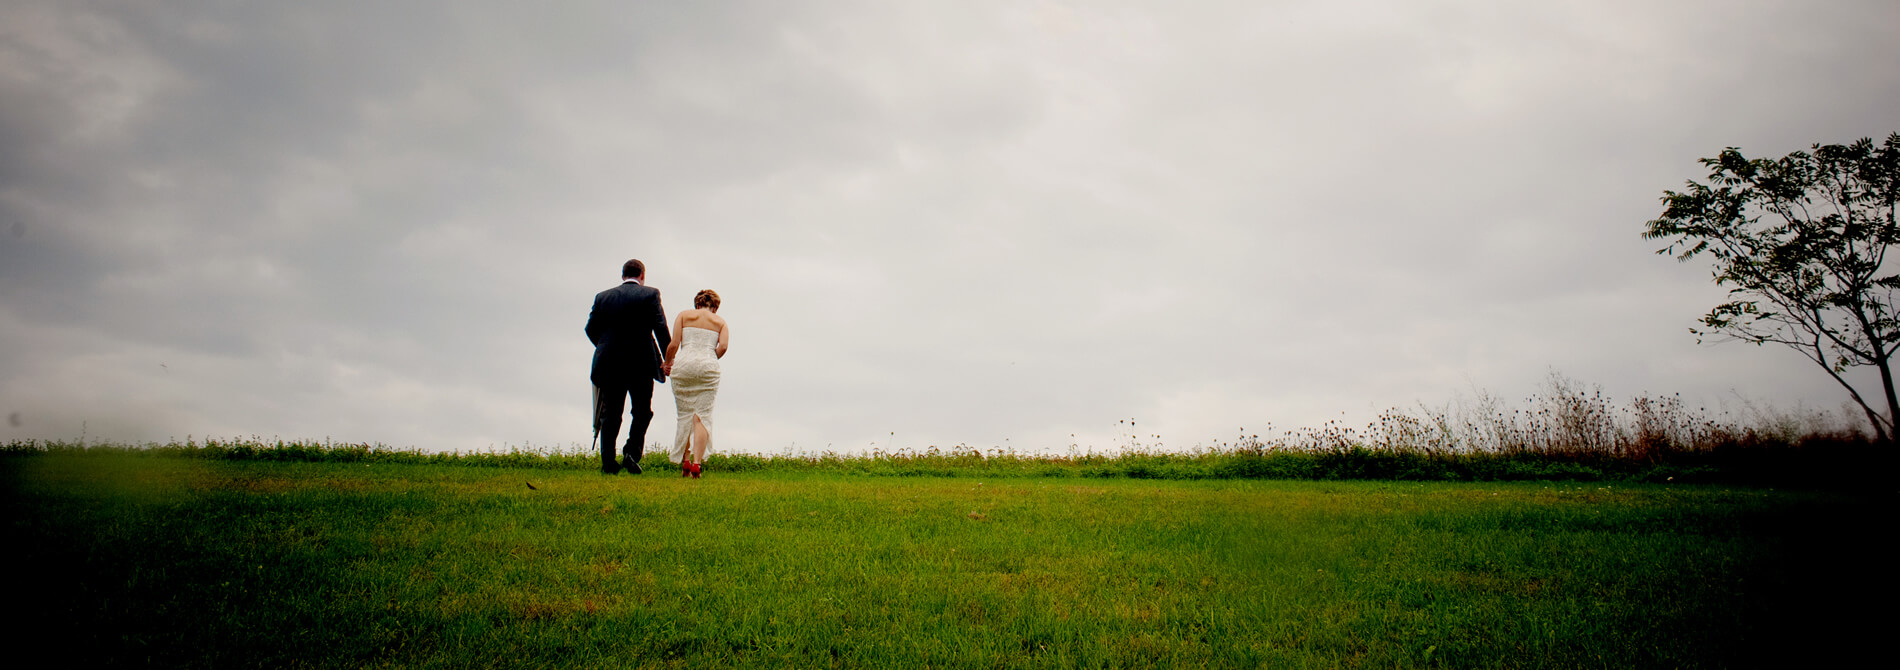 distant view of groom and bride walking away while holding hands at the top of an elevation of green grass against a gray sky